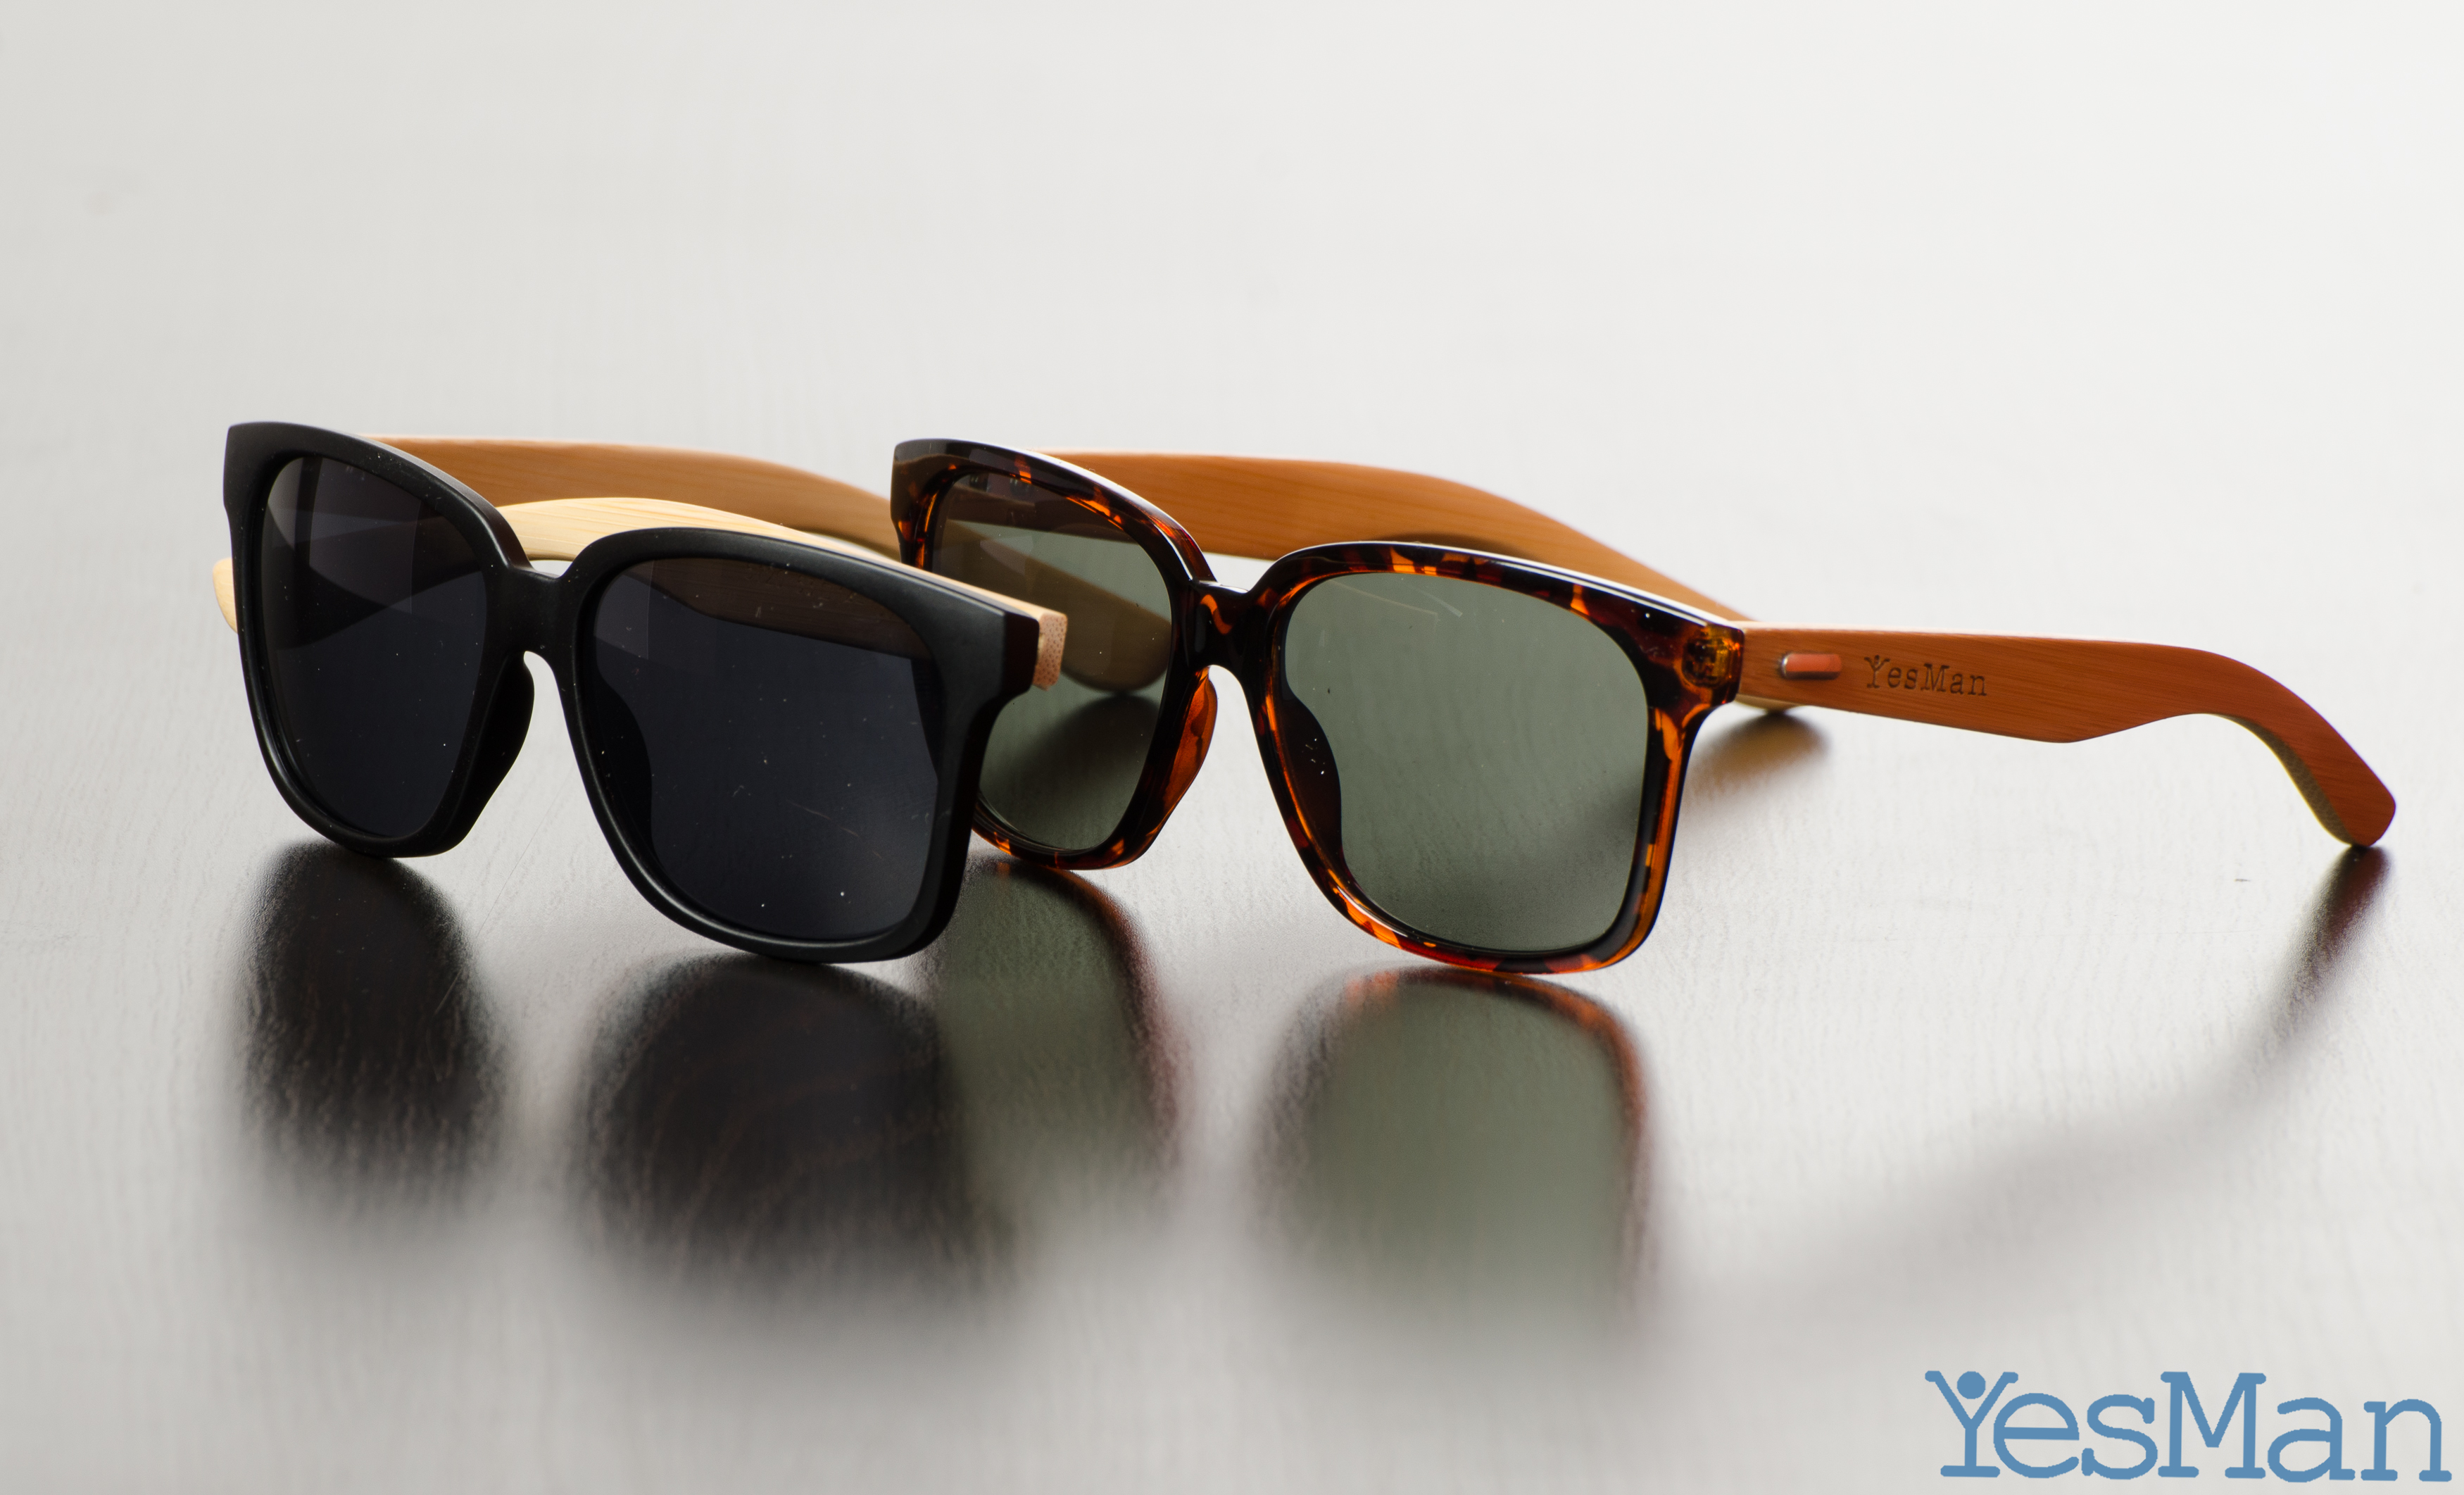 affordable sunglasses  Yes Man Sunnies: Affordable, Stylish, Handmade Sunglasses ...